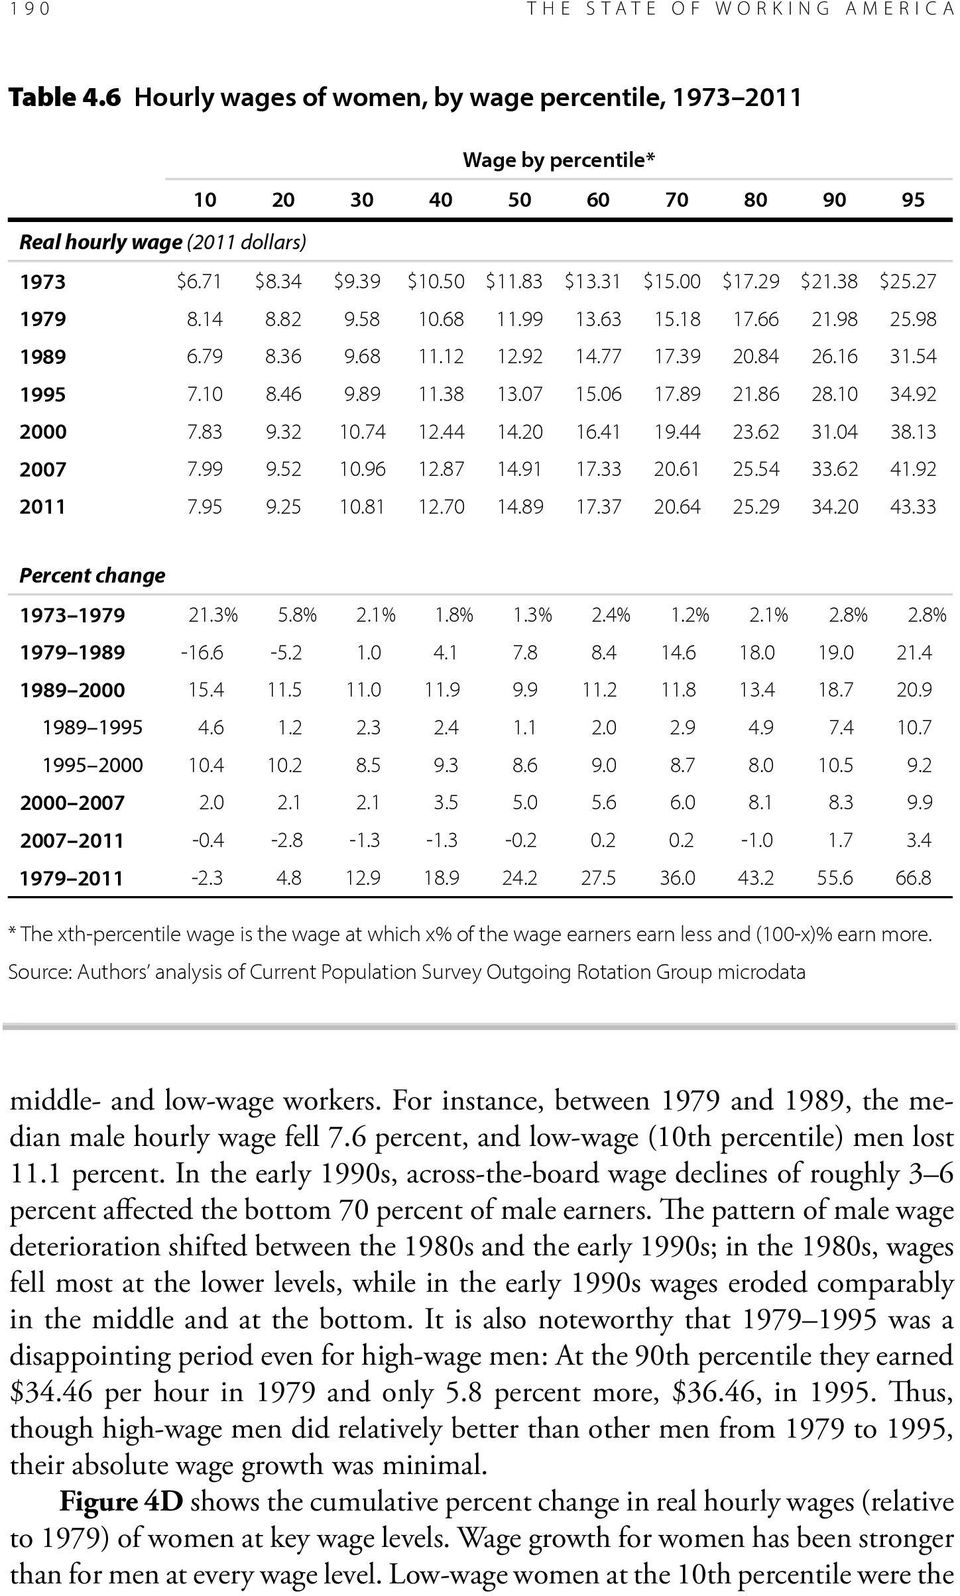 The pattern of male wage deterioration shifted between the 1980s and the early 1990s; in the 1980s, wages fell most at the lower levels, while in the early 1990s wages eroded comparably in the middle